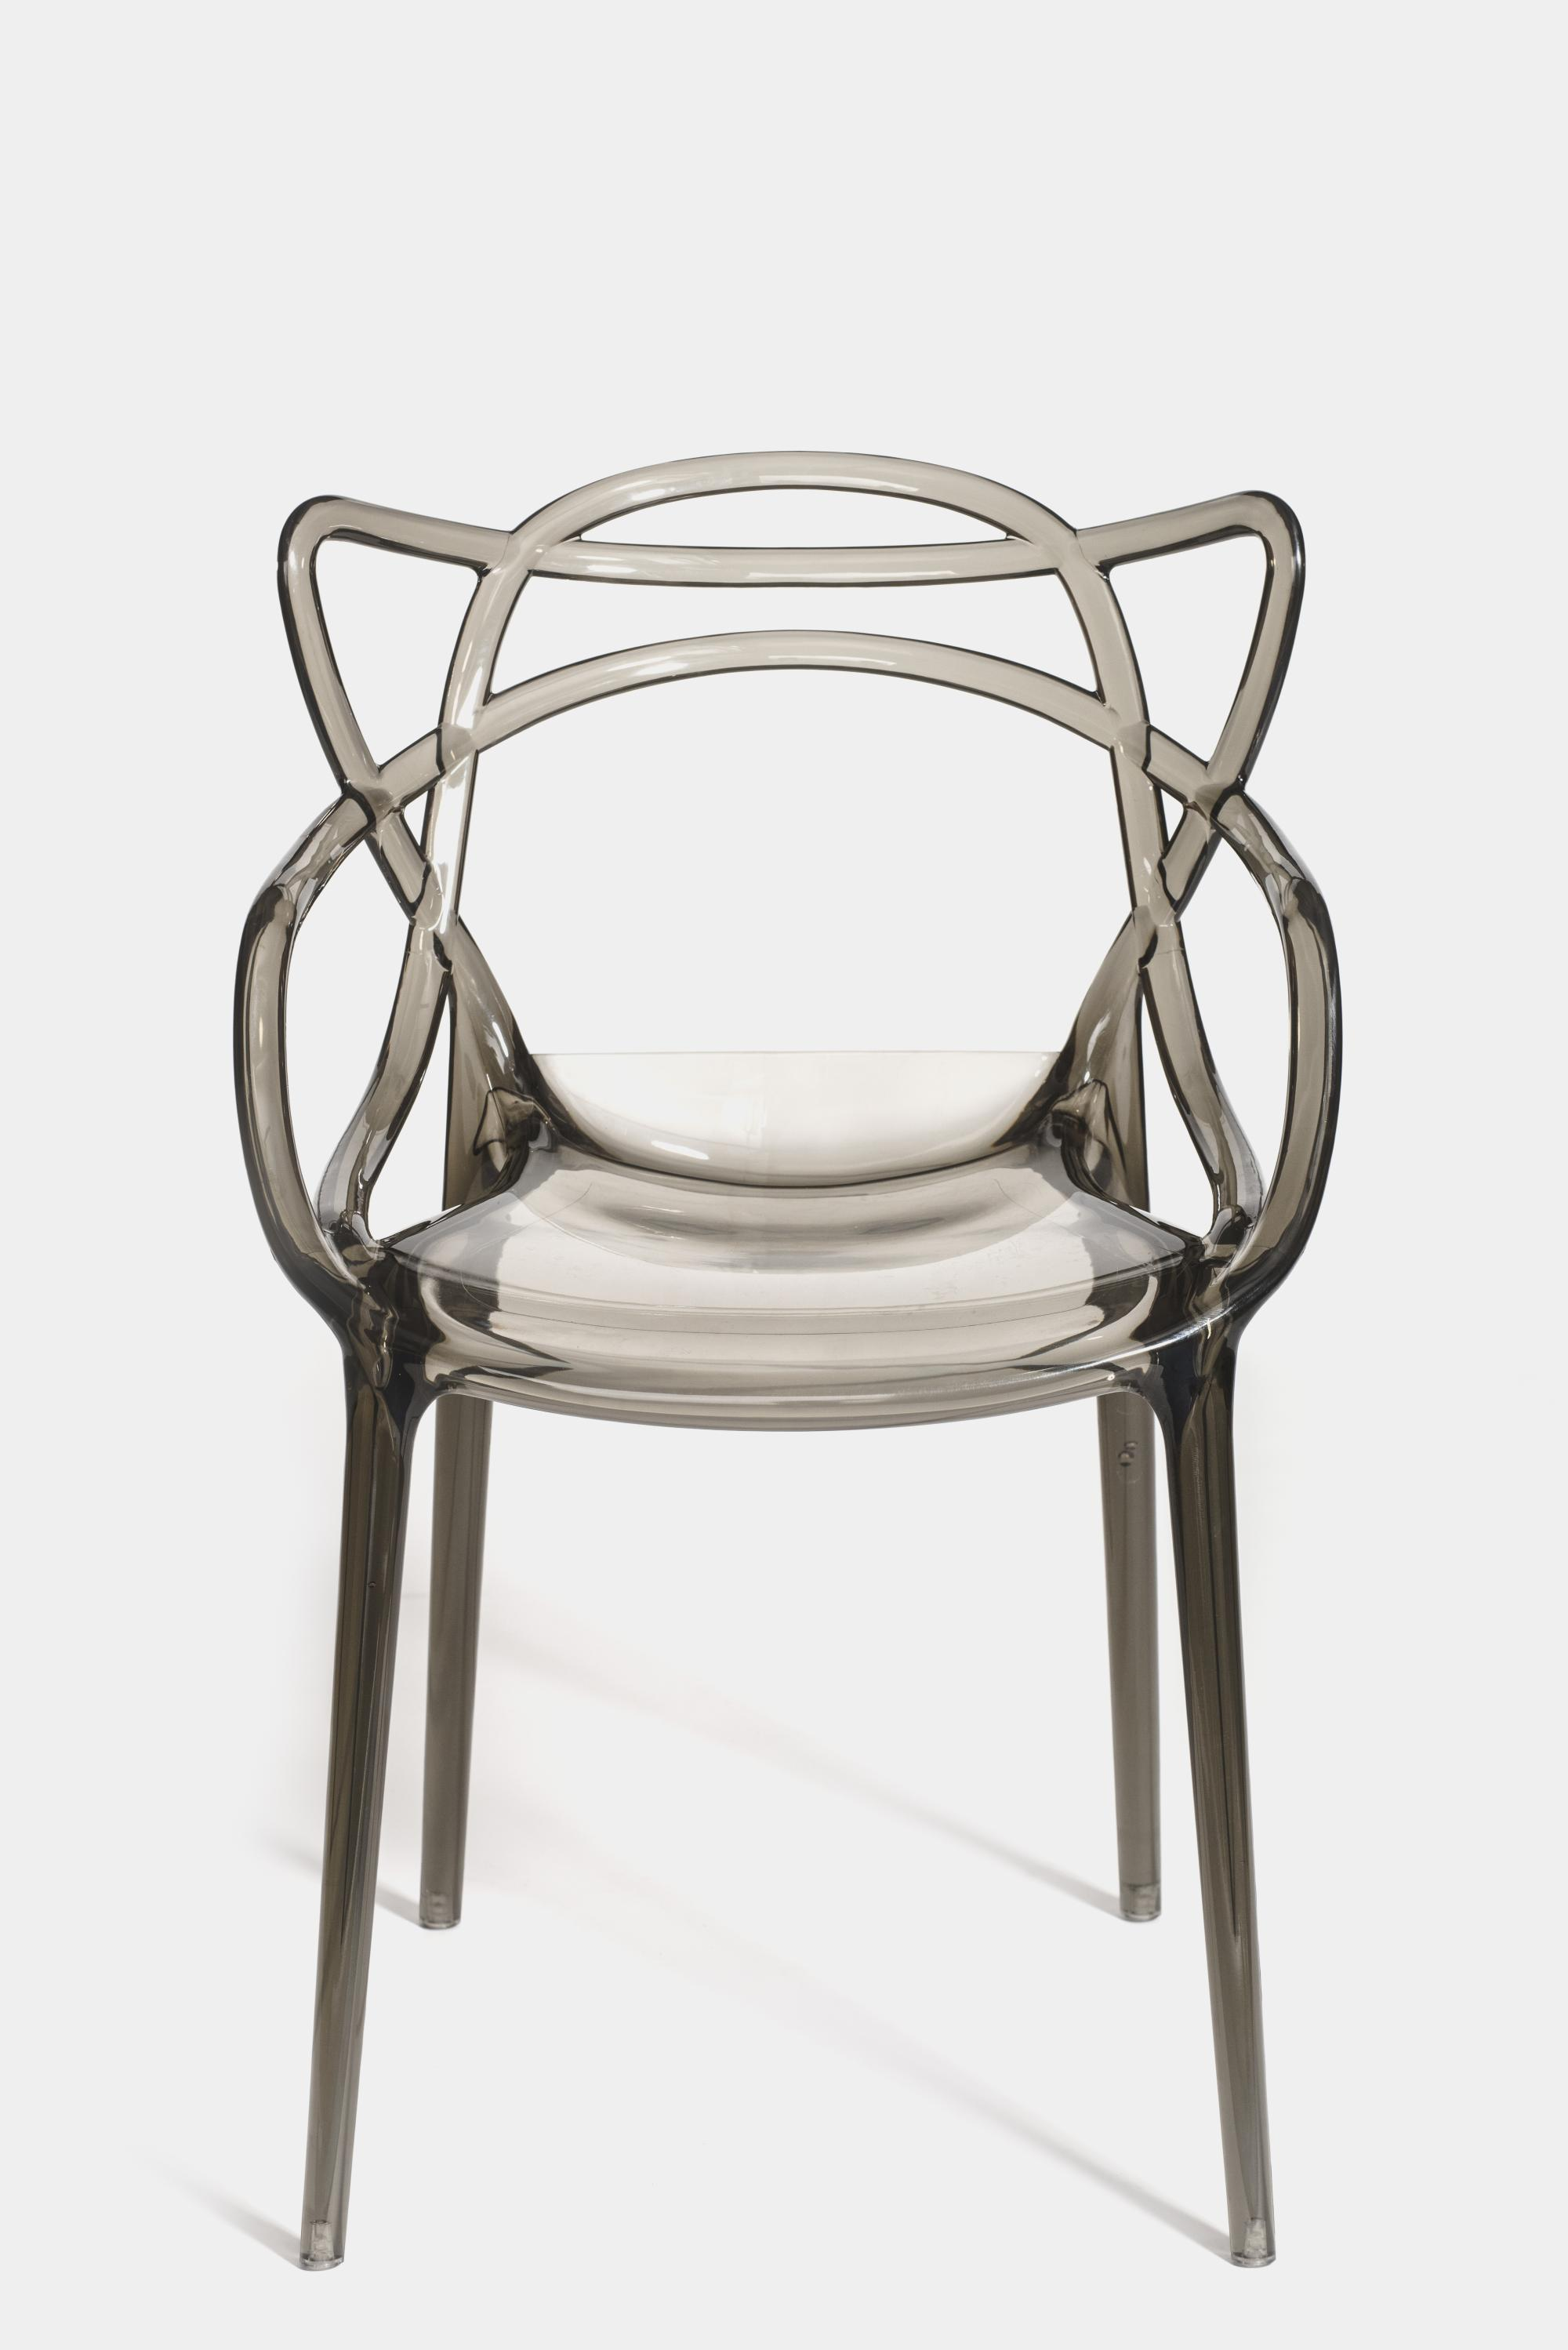 Forrest chair - Image 1